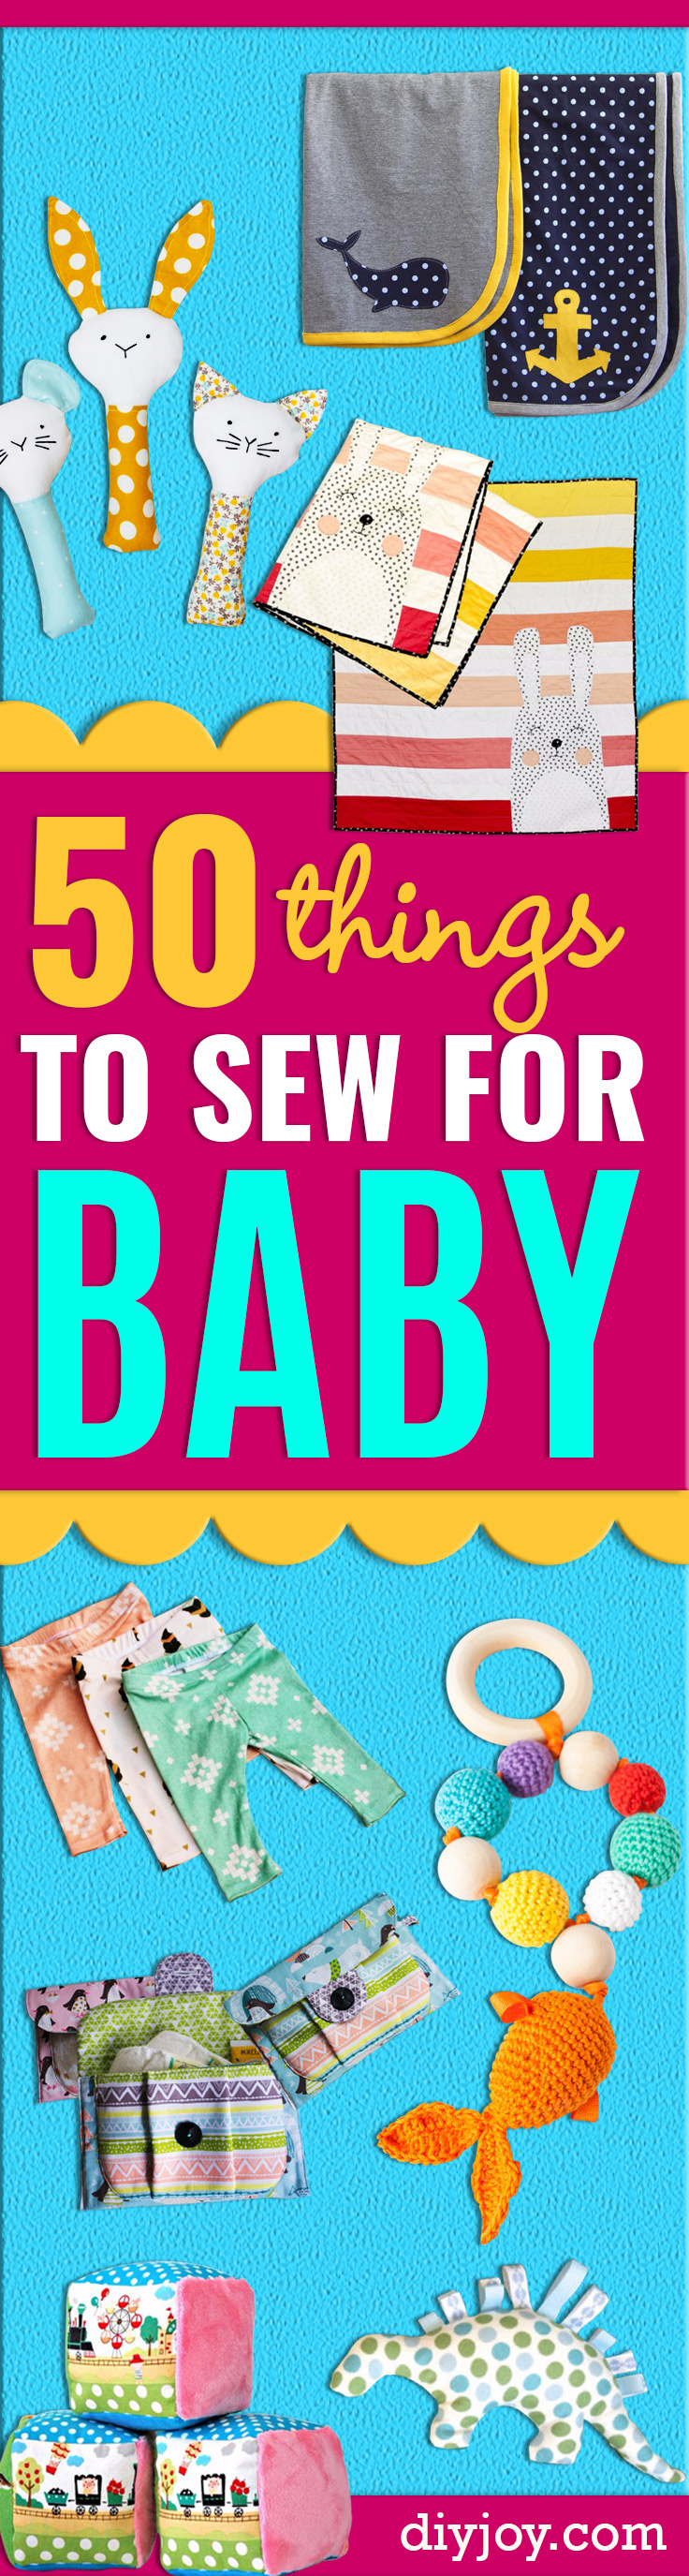 51 Things to Sew for Baby  - Cool Gifts For Baby, Easy Things To Sew And Sell, Quick Things To Sew For Baby, Easy Baby Sewing Projects For Beginners, Baby Items To Sew And Sell http://diyjoy.com/sewing-projects-for-baby